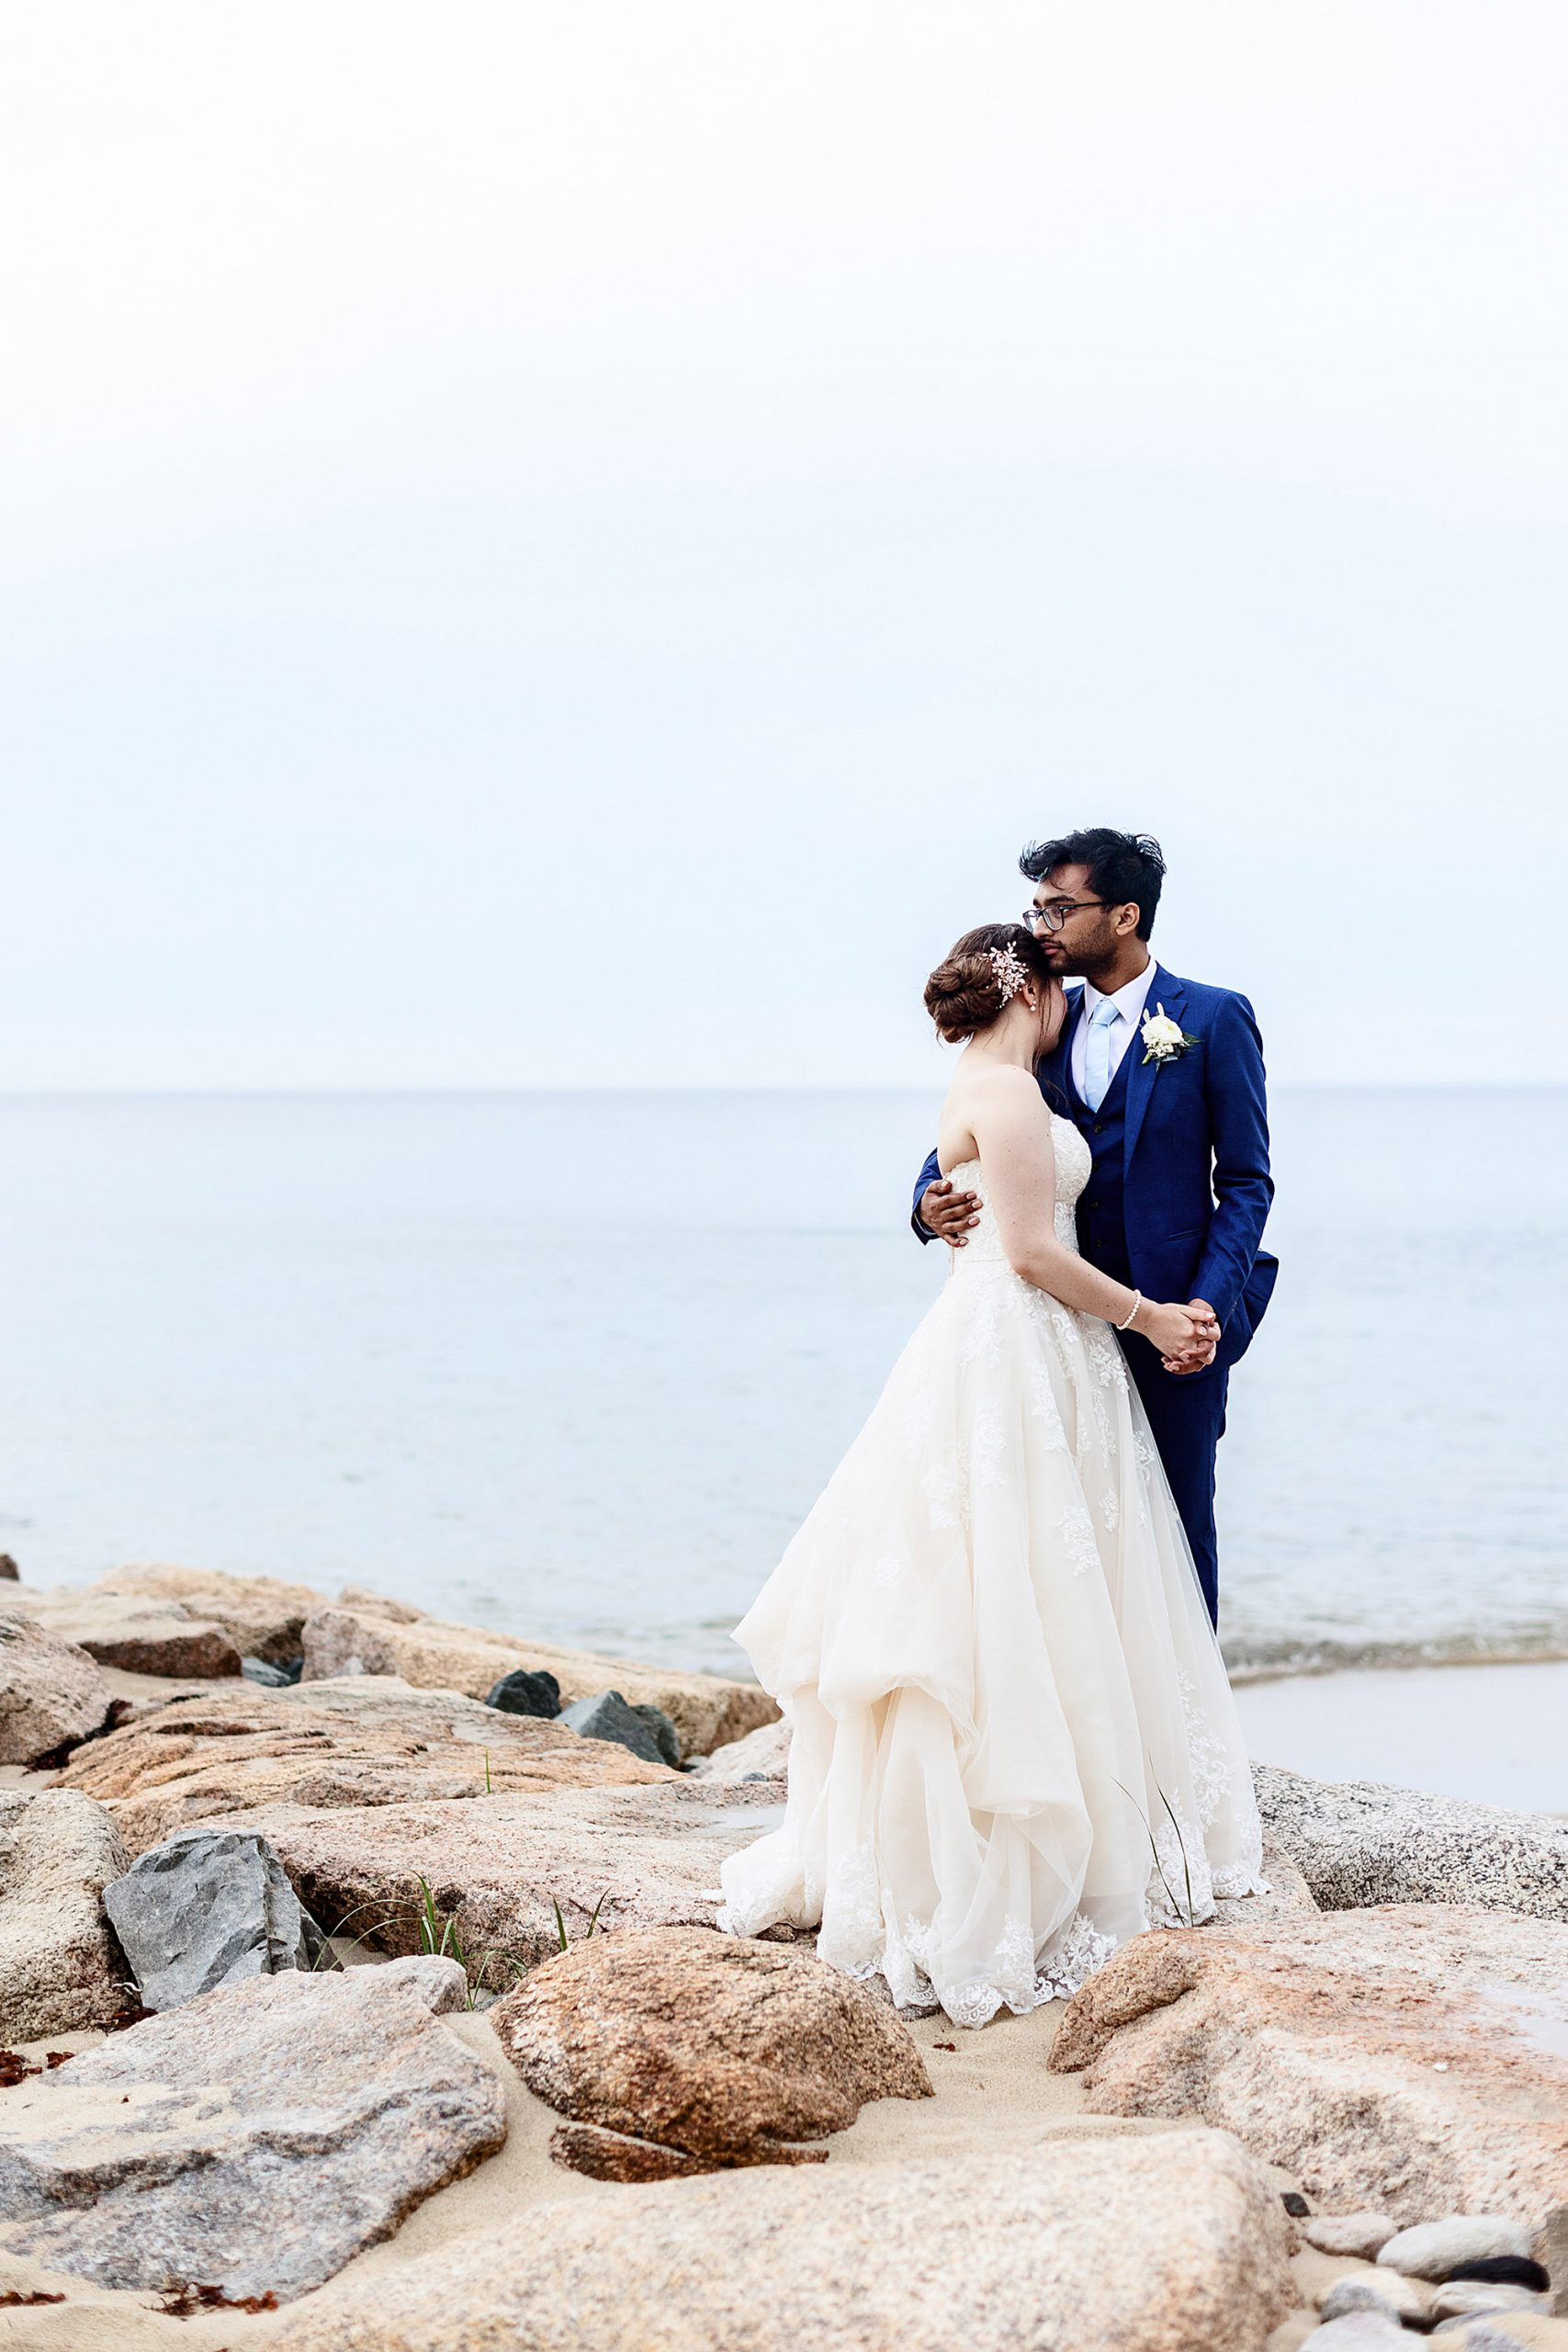 White Cliffs Country Club Wedding  I  The couple stand on a jetty following their wedding ceremony on Cape Cod.